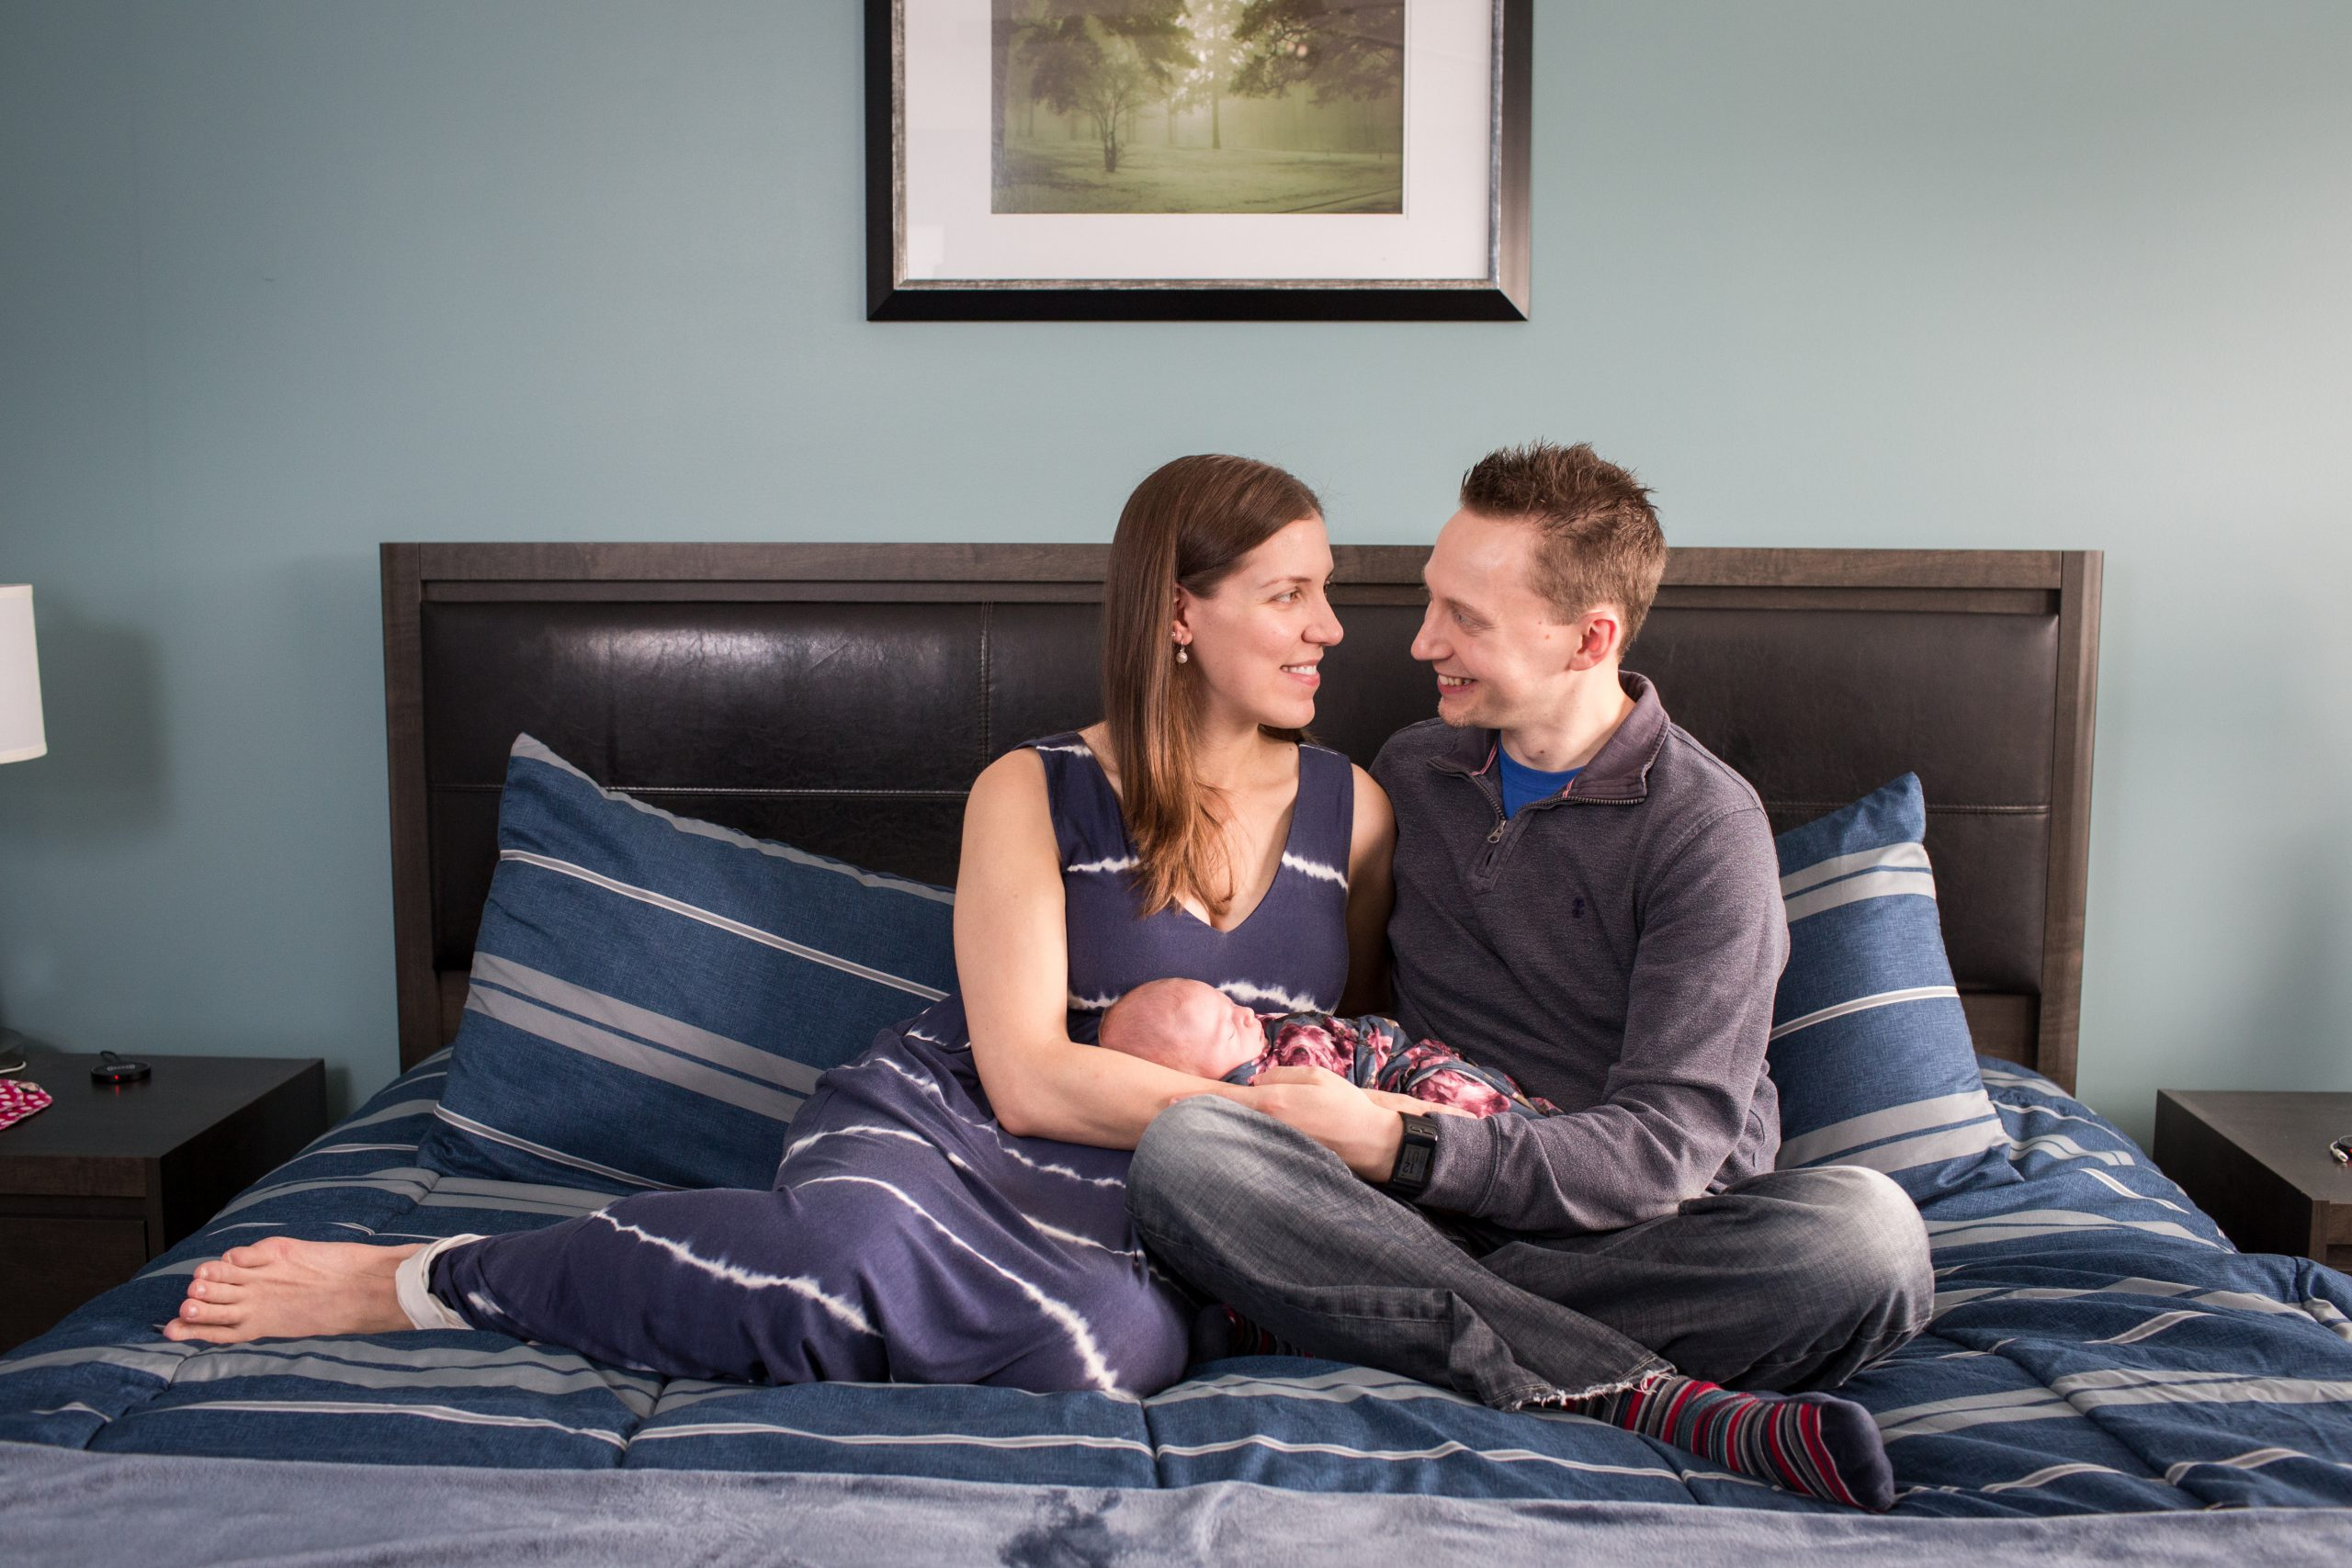 newborn photos taken with the parents at home